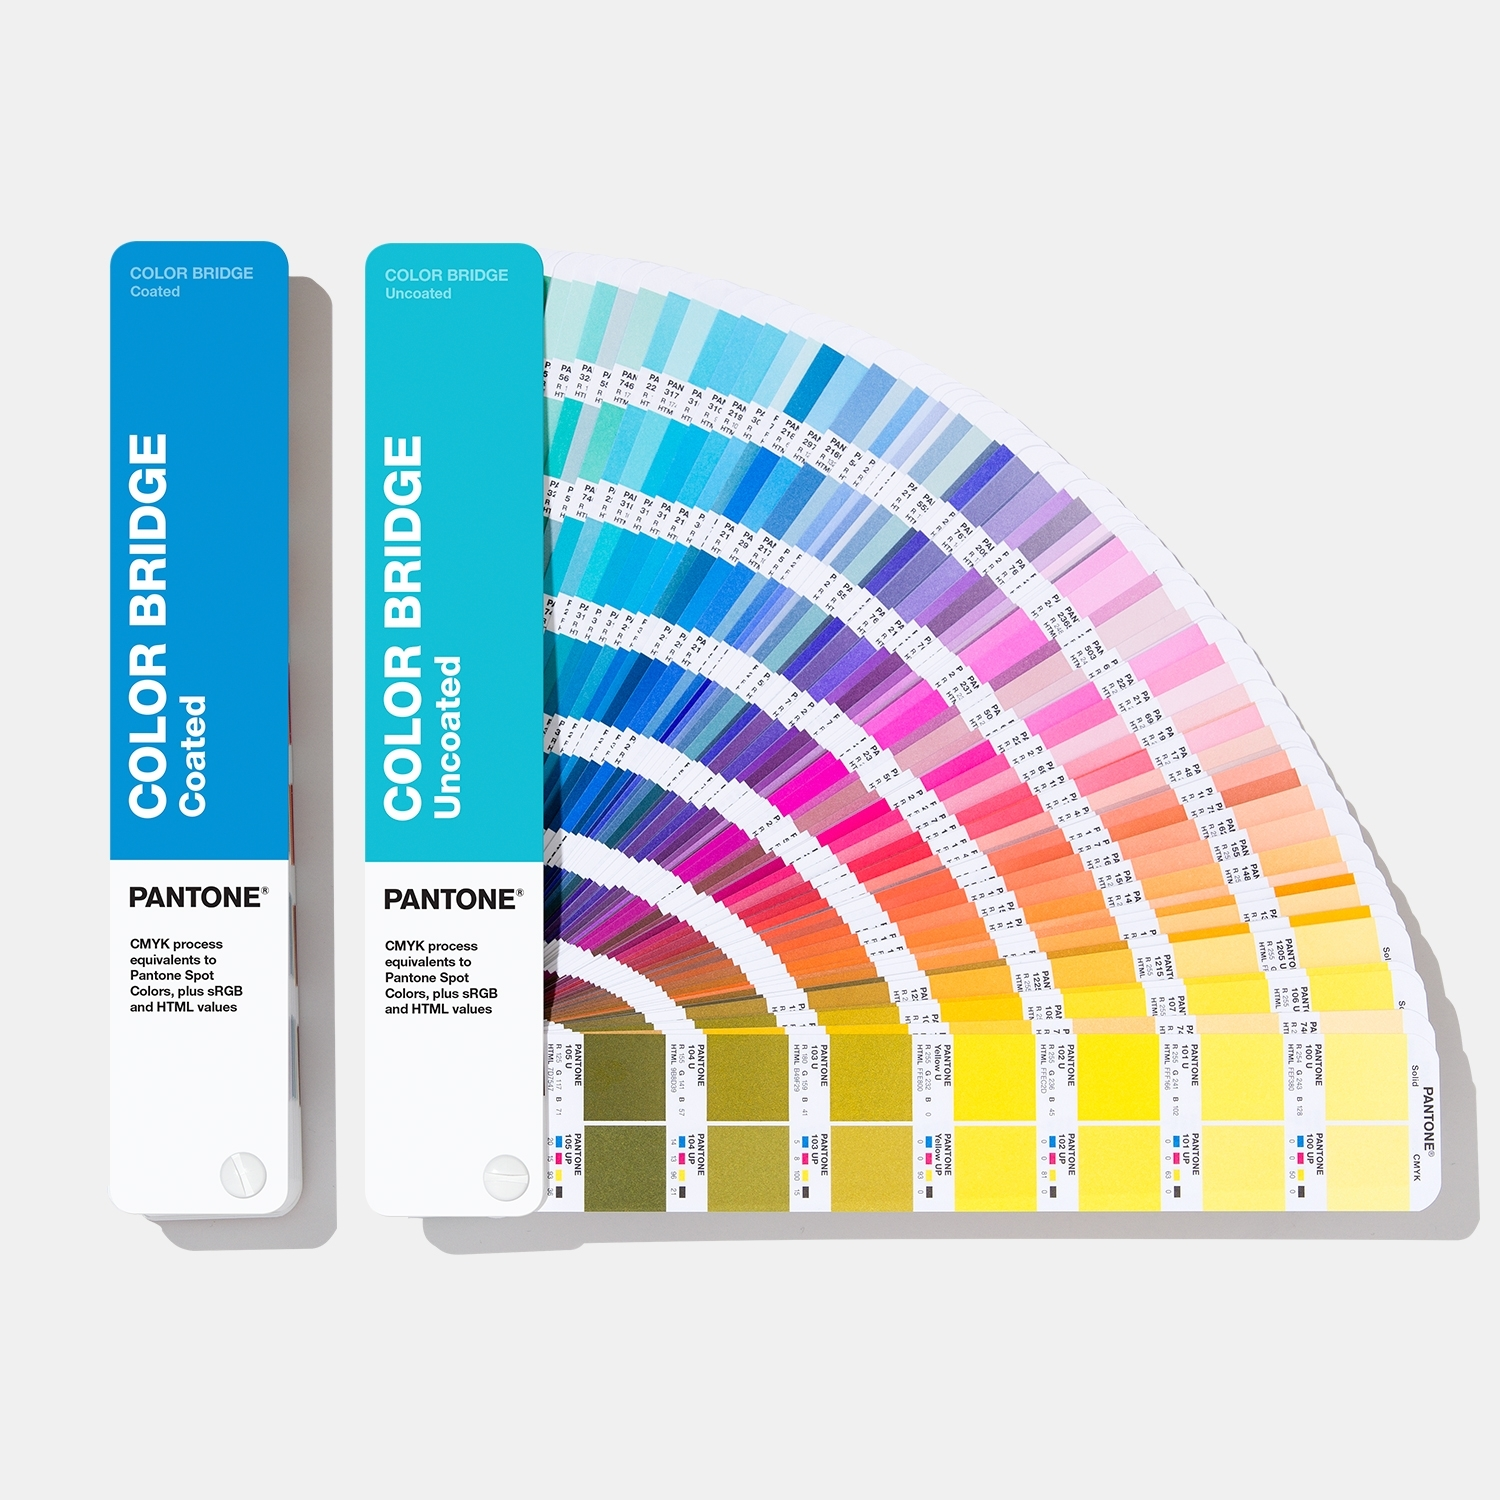 Pantone Color Bridge Set Coated & Uncoated - View 1